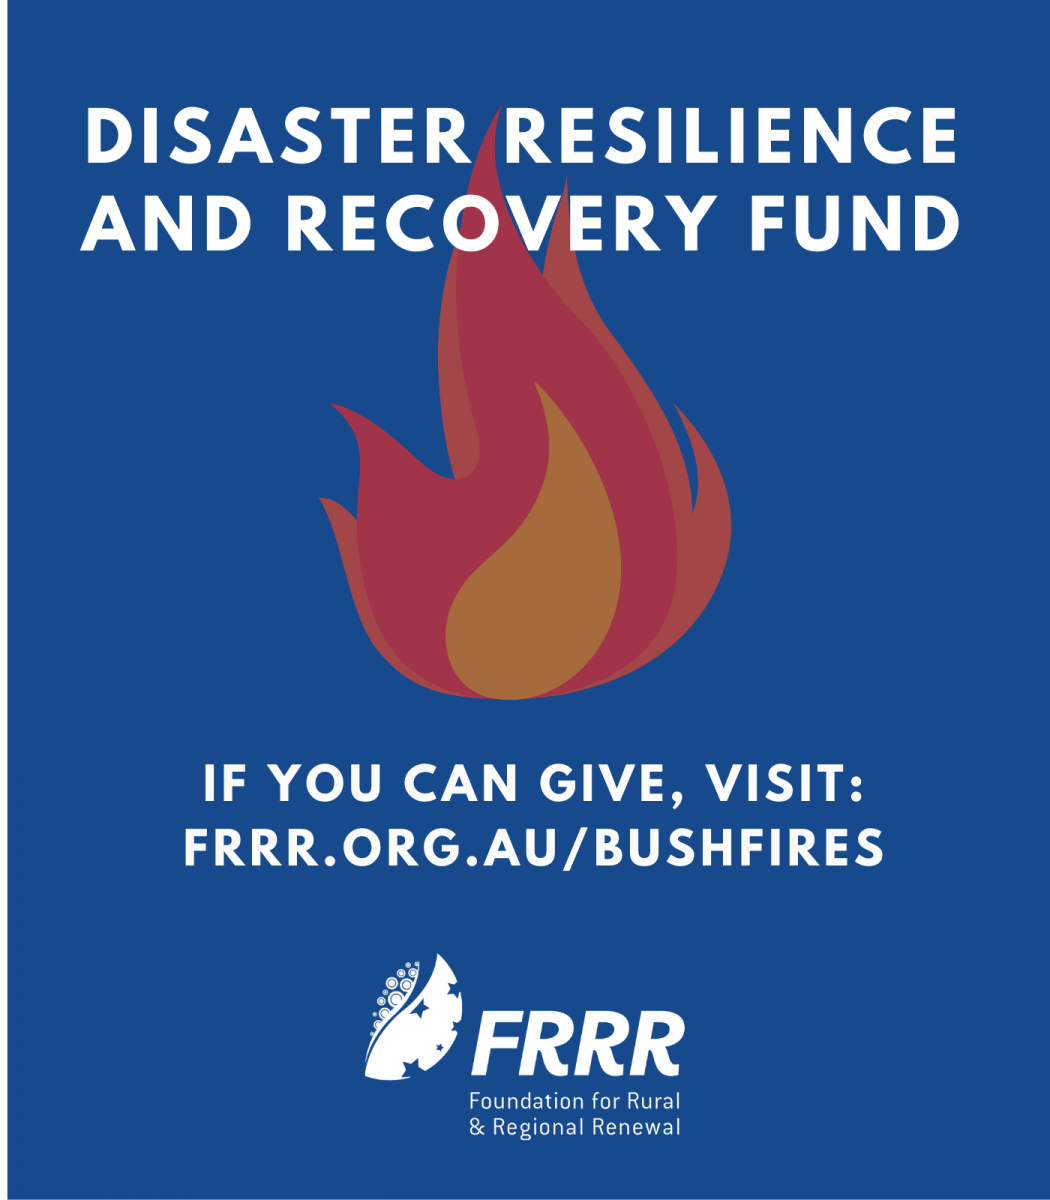 BUSH FIRE DISASTER RELIEF